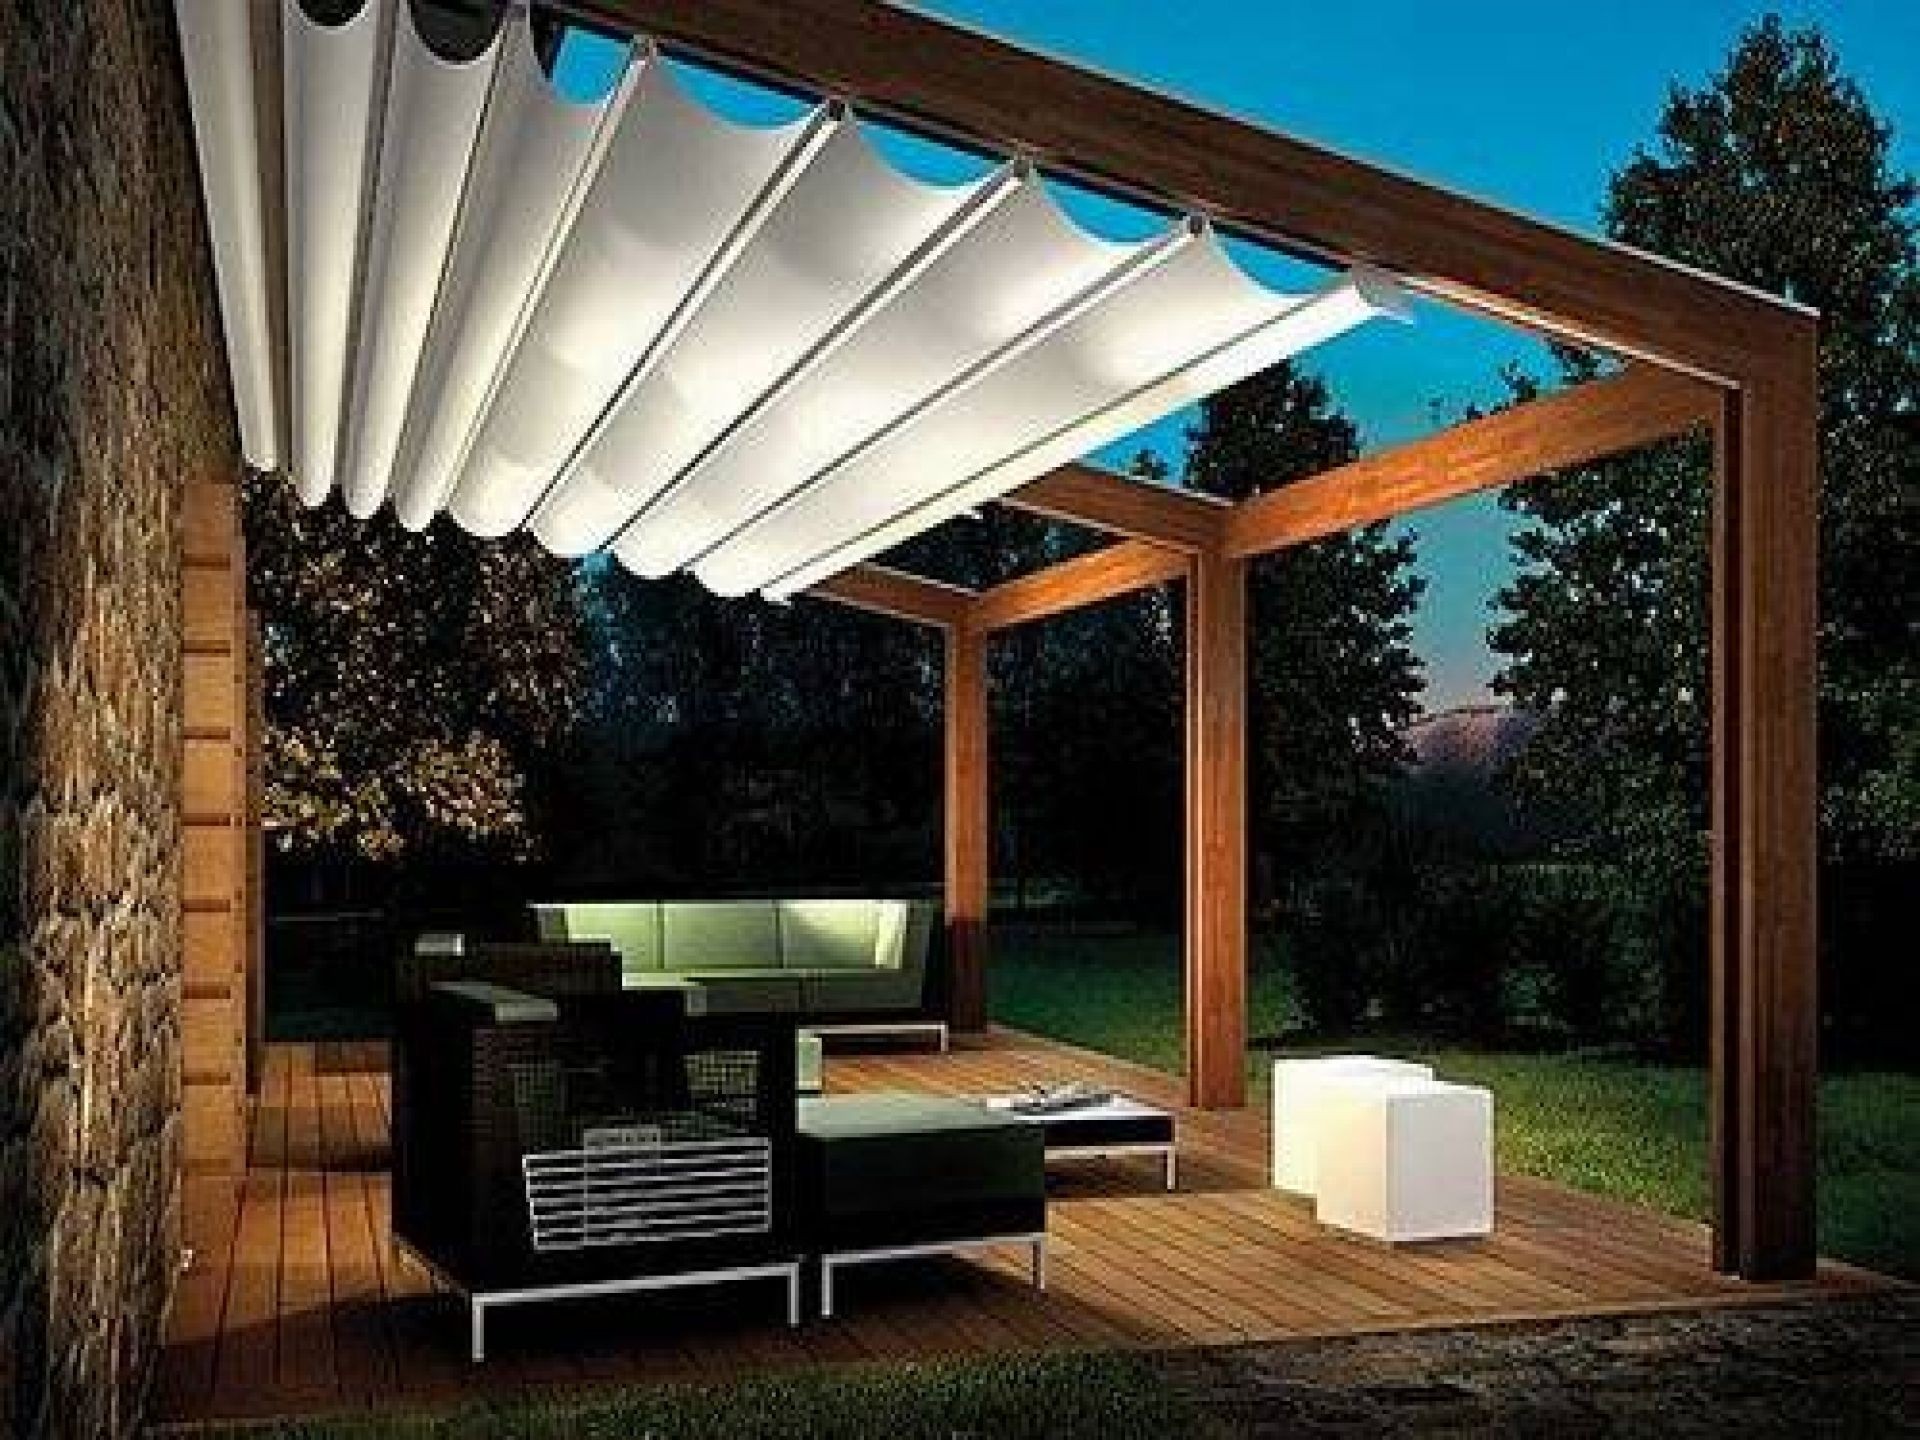 Modern Lighting Outdoor Canopy And Backyard Pergola - Pictures of ...